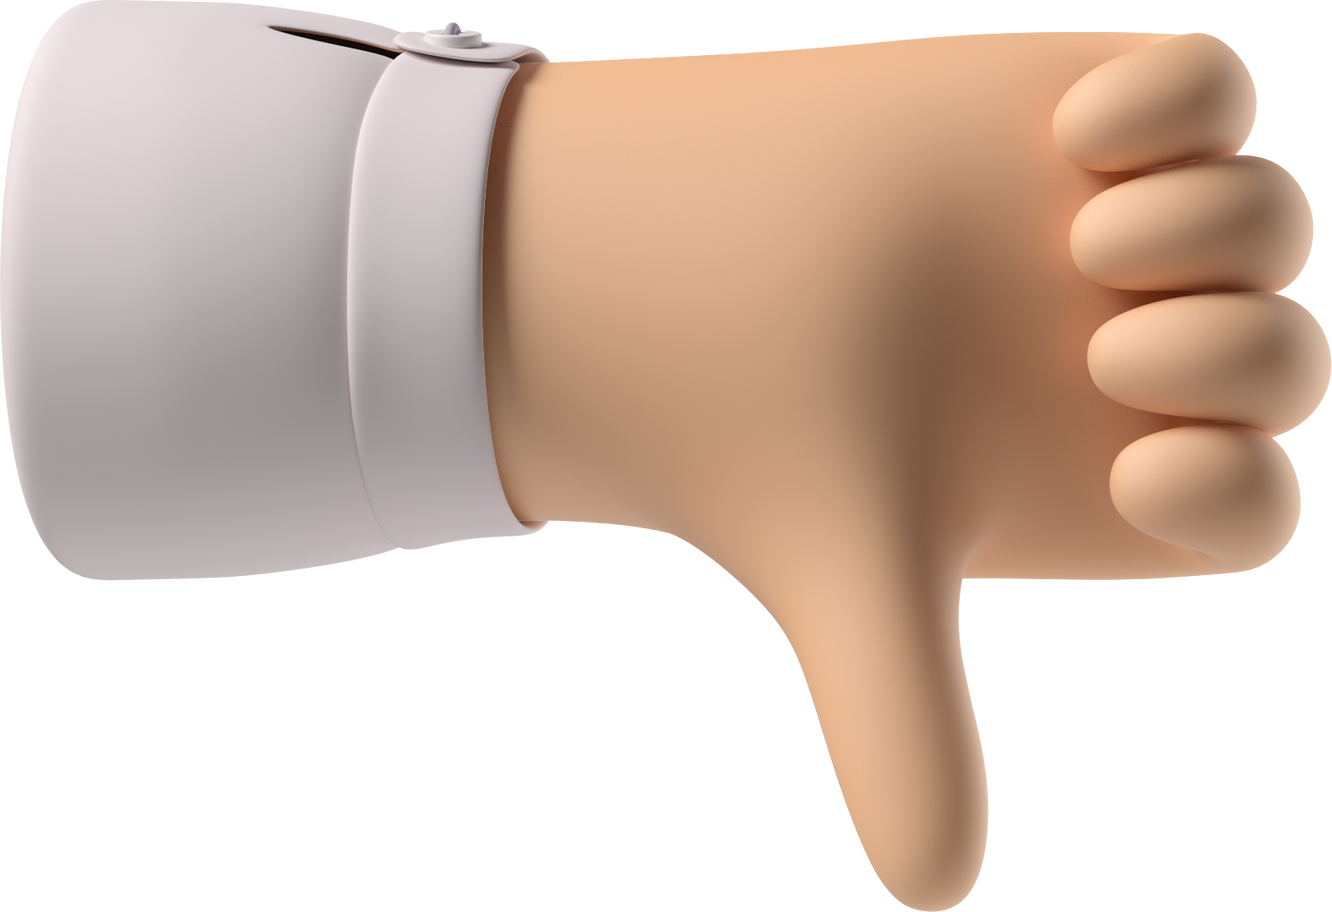 thumbs down Clipart illustration in PNG, SVG